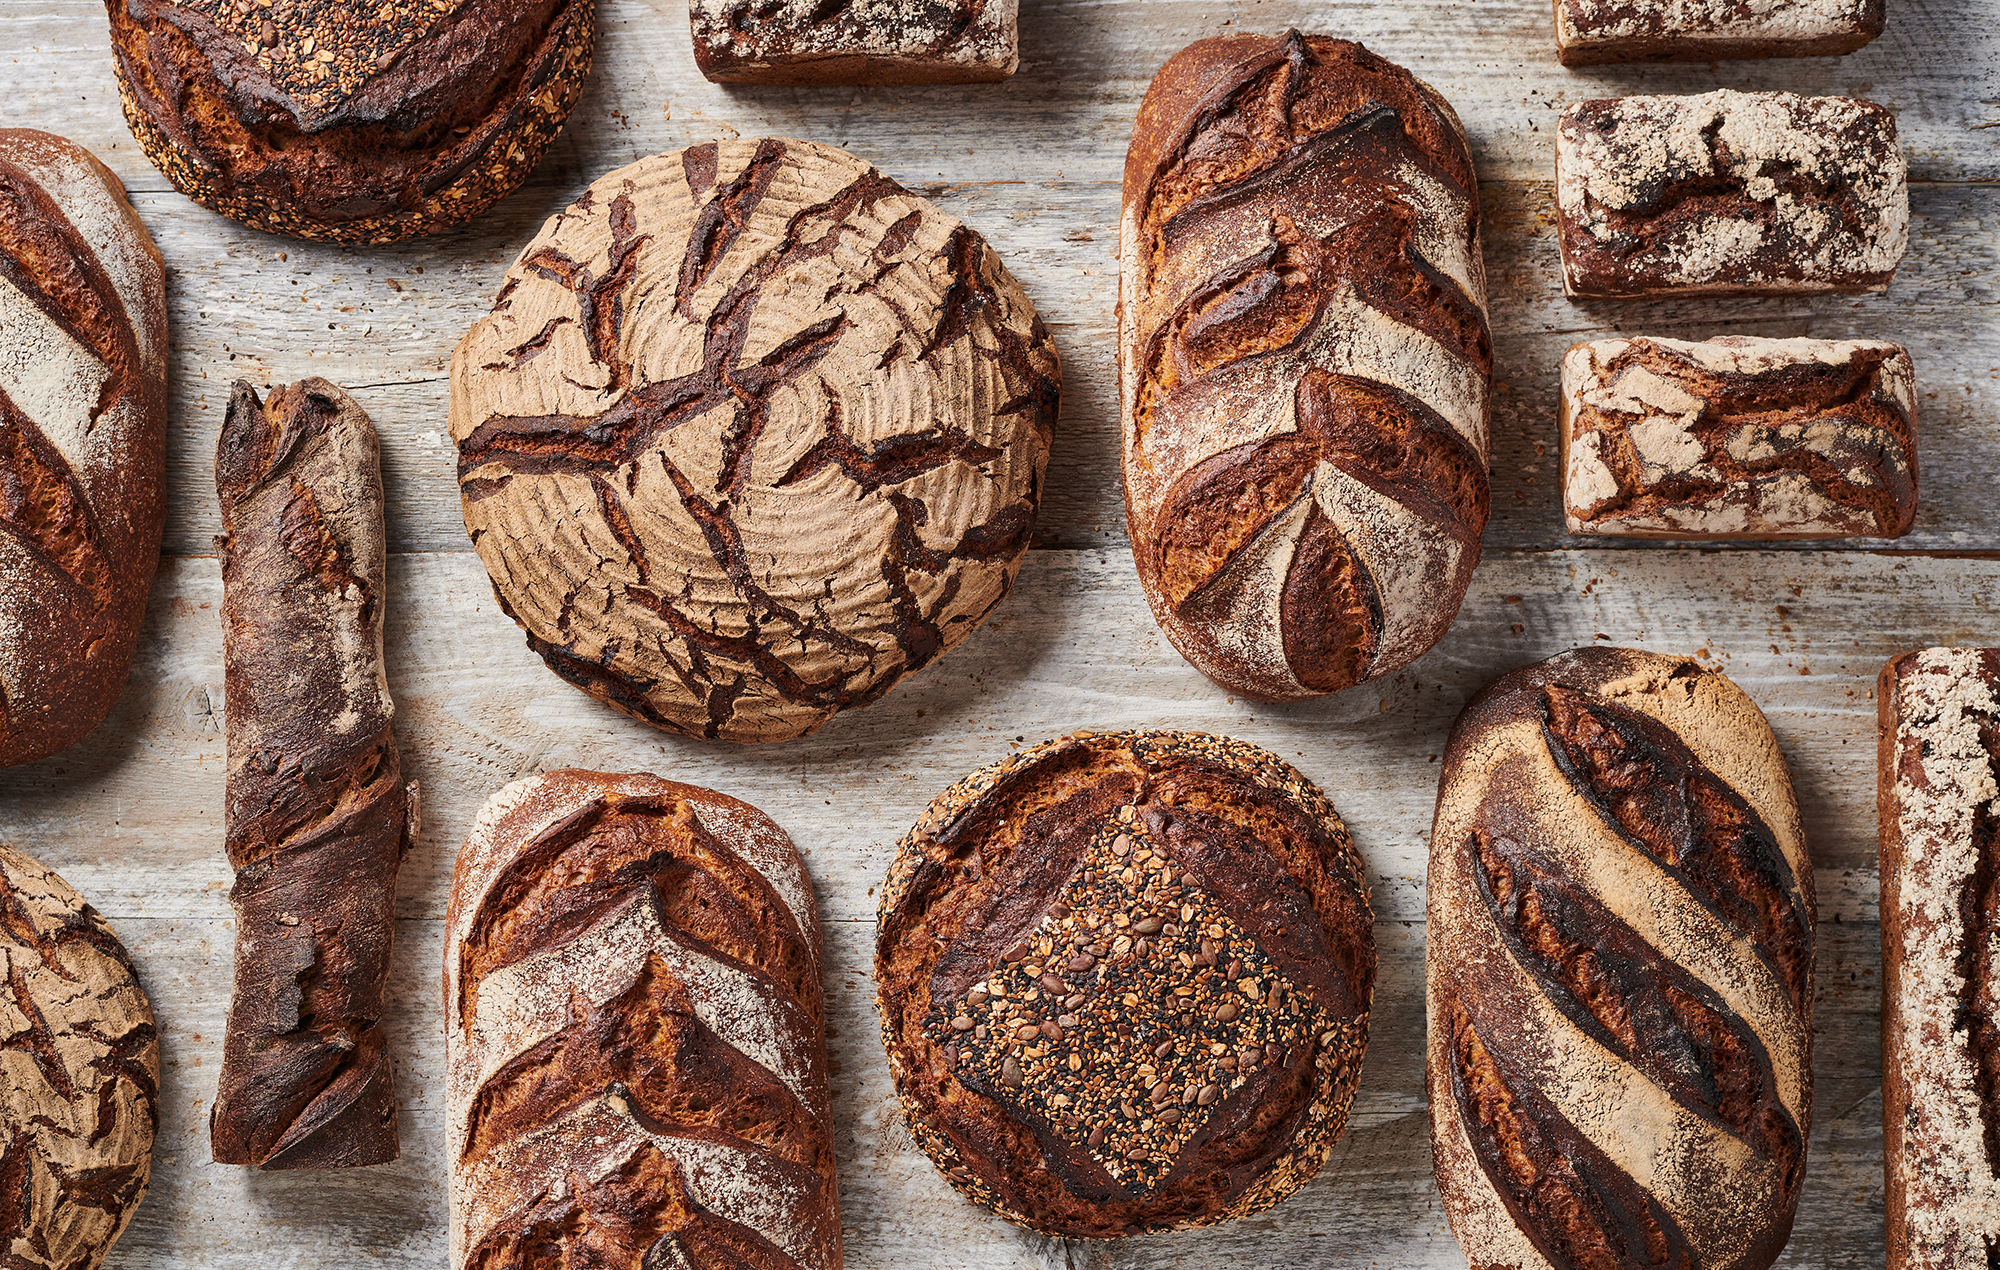 selection of artisan sourdough and rye breads